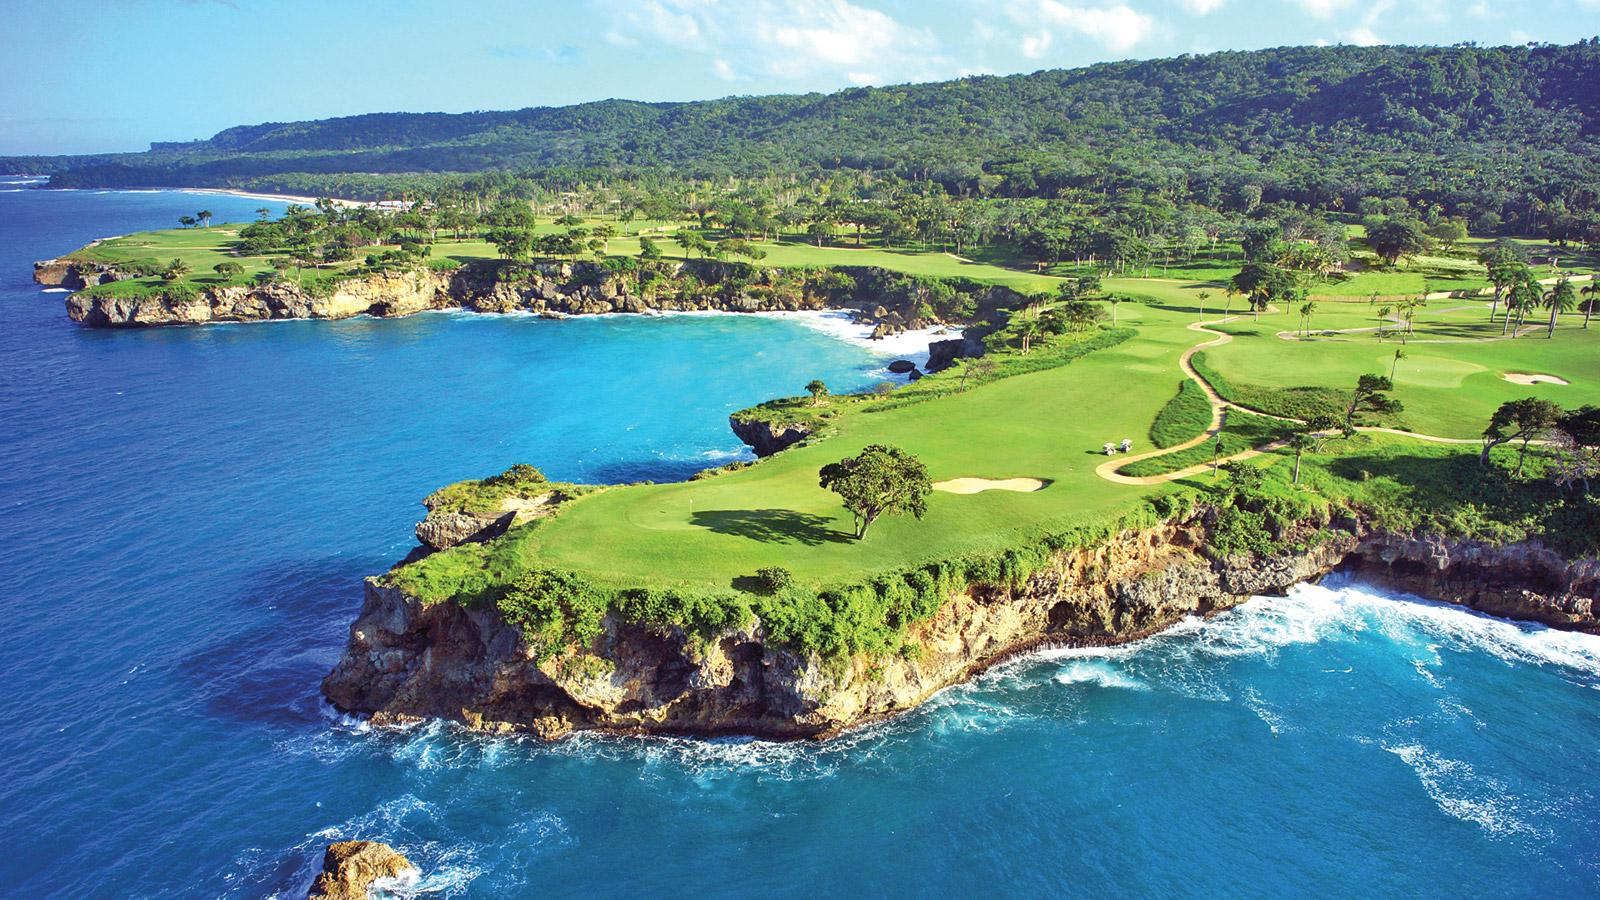 The Dominican Republic has long been the king of Caribbean golf, but its hidden gem is the Playa Grande Golf Course, a stunning Robert Trent Jones Sr. clifftop design on the country's less-visited north shore.